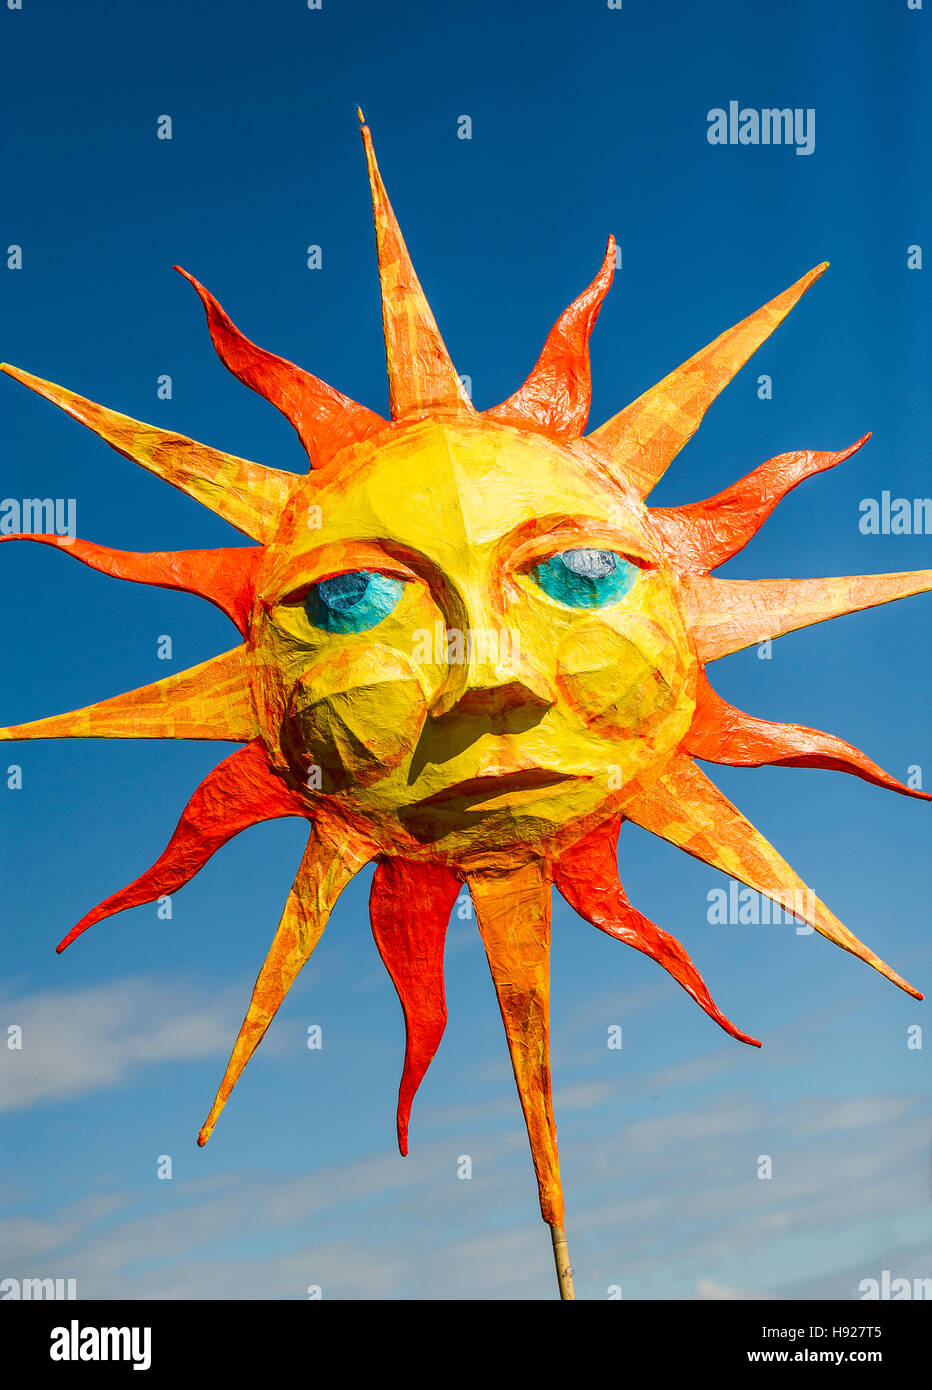 A papier mache representation of the sun in the Penryn Festival in Cornwall. - Stock Image